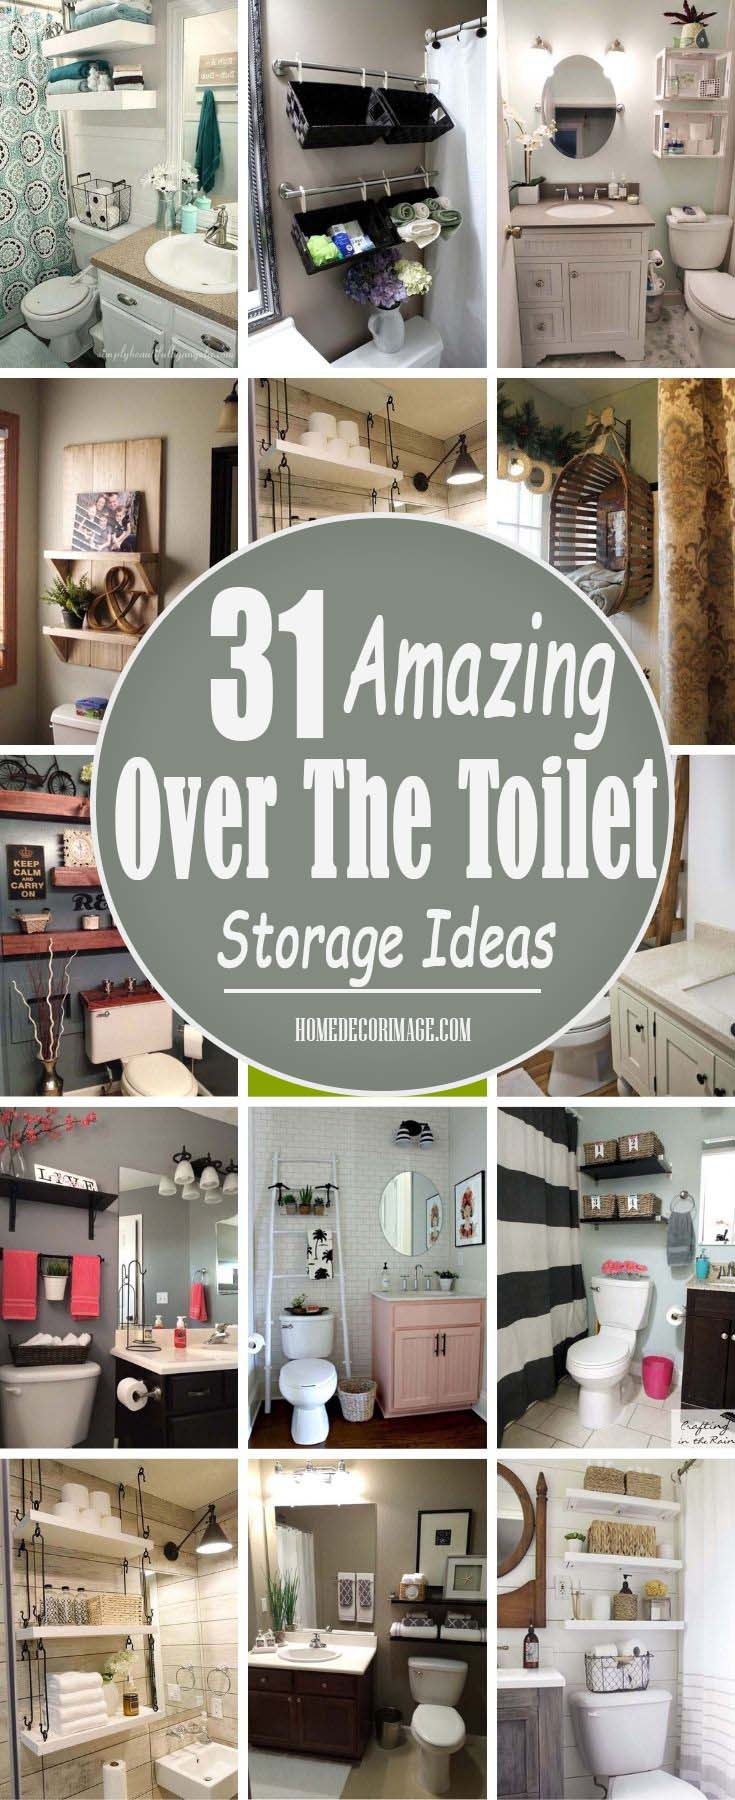 31 Creative Over The Toilet Storage Ideas To Help You Keep Your Bathroom Organized #storage #toilet #bathroom #homedecorimage